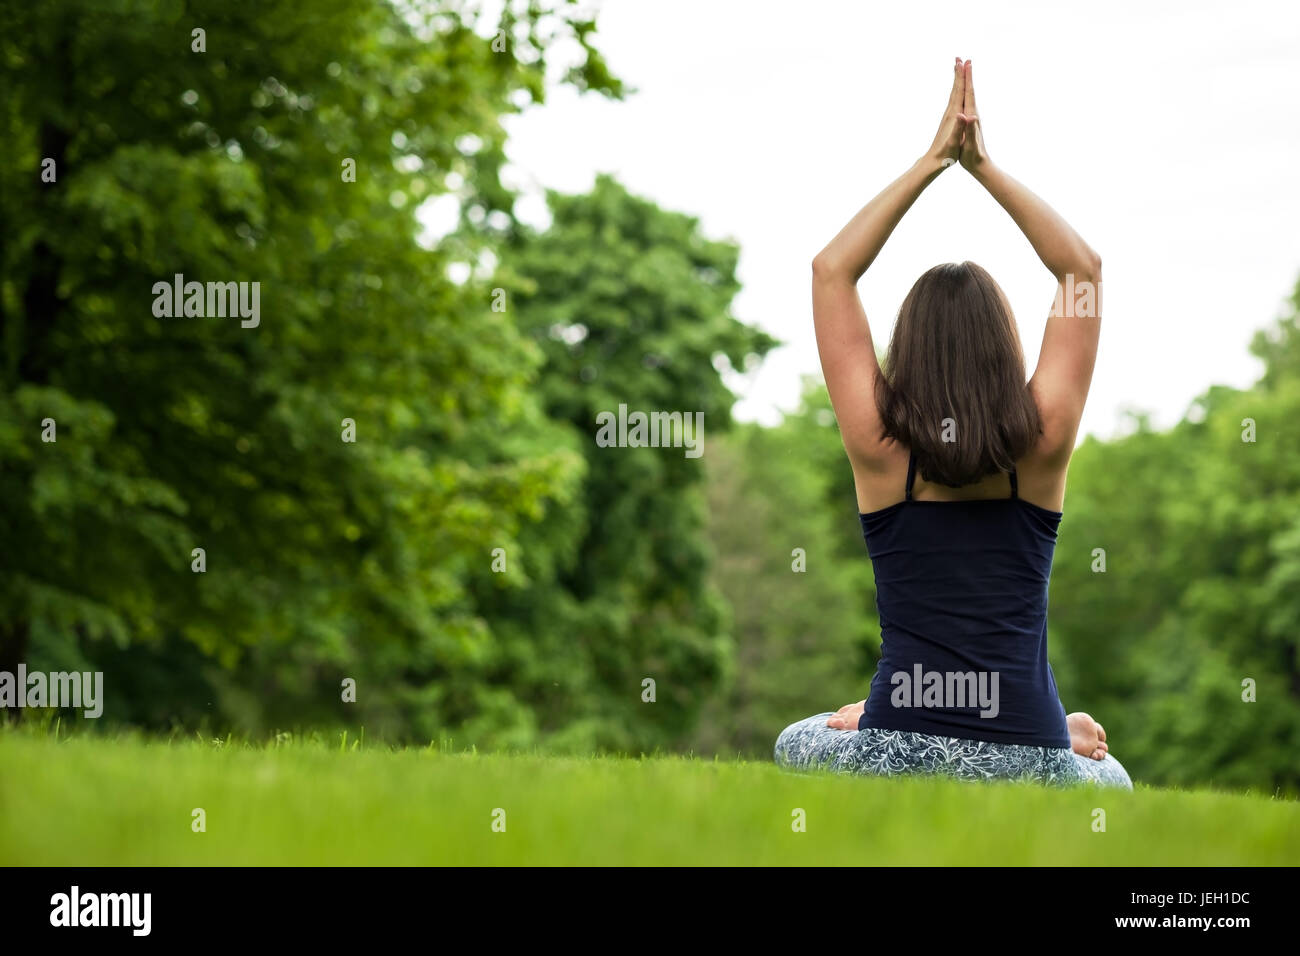 Meditation healthy life exercise concept. meditating and relaxing in Padmasana Lotus Pose - Stock Image